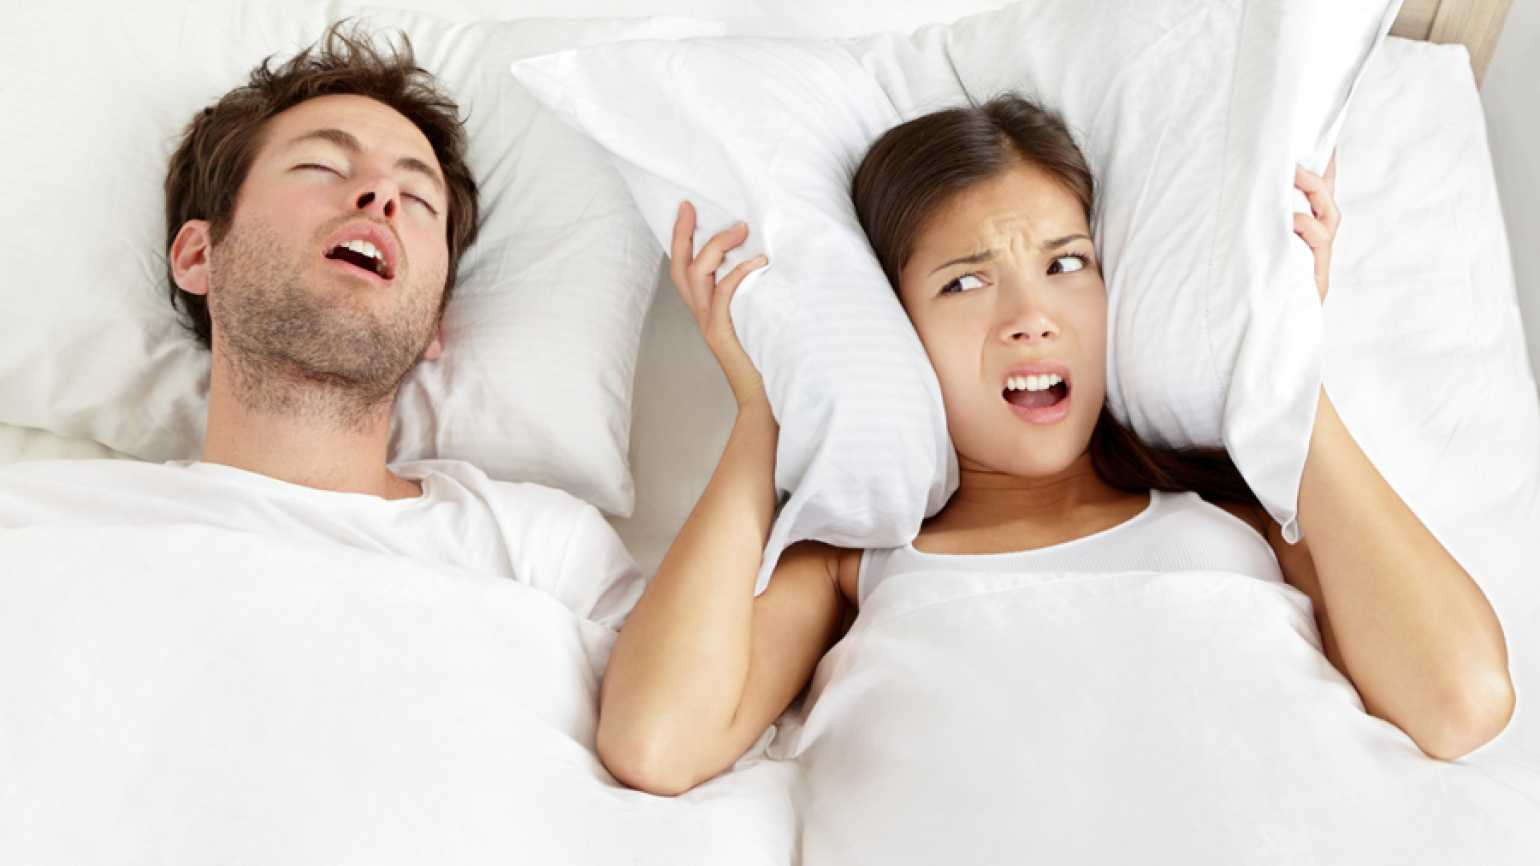 Can the sound of snoring turn into music to one's ears? A wife is grateful for her husband's snoring after 64 years of marriage.